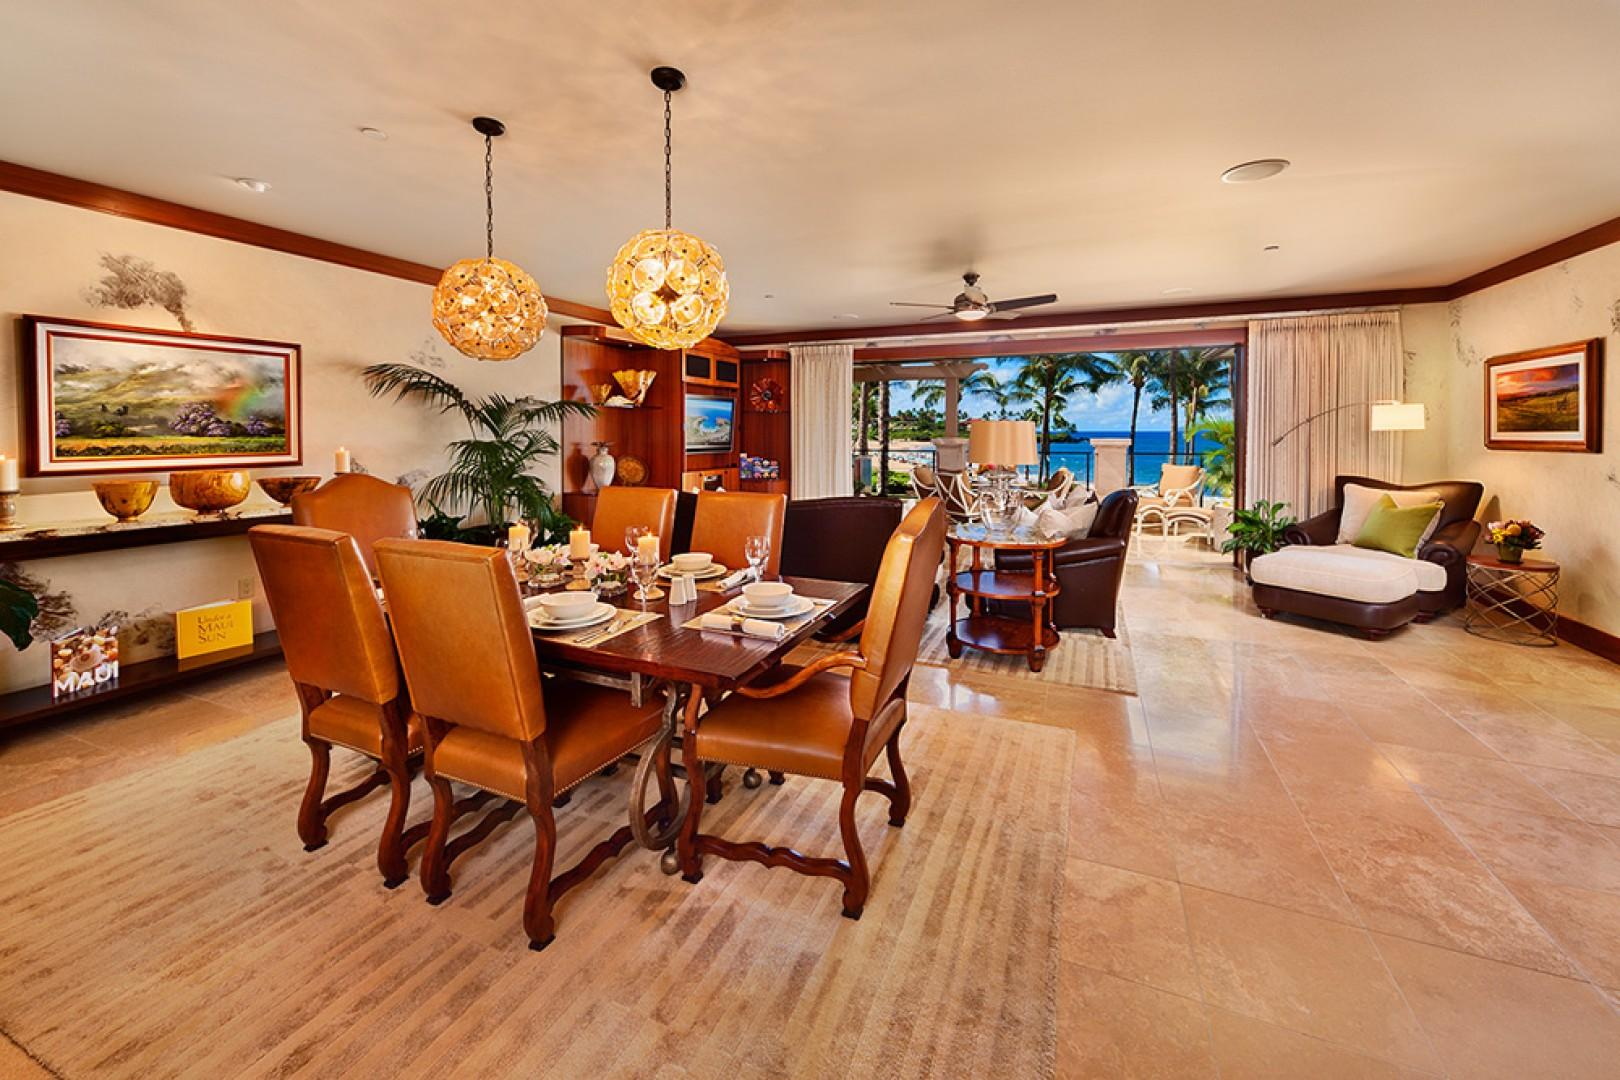 The Beautiful Great Room of A201 Royal Ilima - Looking Towards Wailea Beach. Genuine Italian Plaster Walls, Live Plants, Custom Cabinetry, Down-Filled Furniture, Original Art, Pacific Rim and Tropical Artifacts, Gallery-Quality Decor